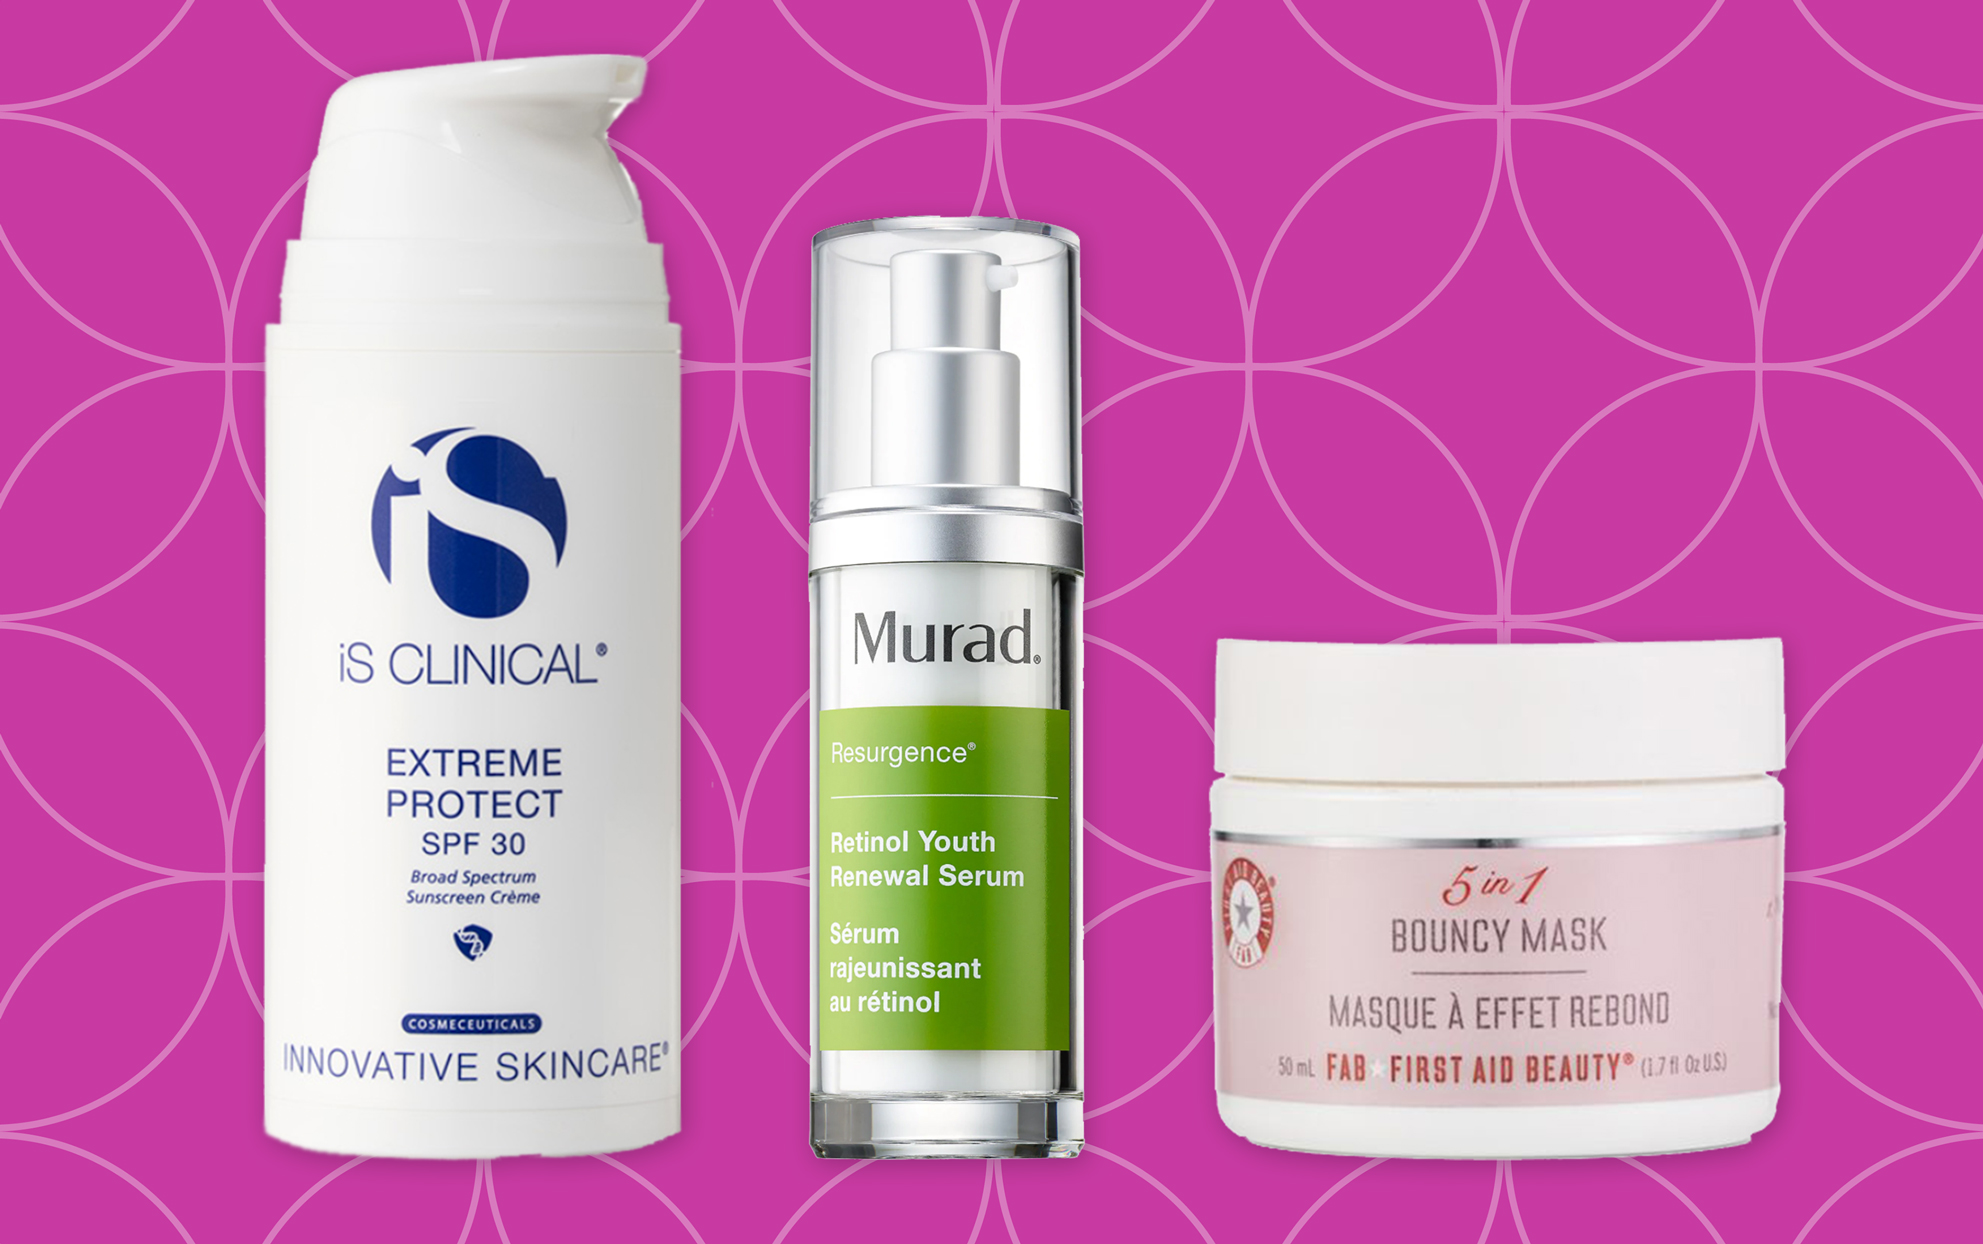 iS Clinical, urad and Bouncy Mask beauty products on a magenta background